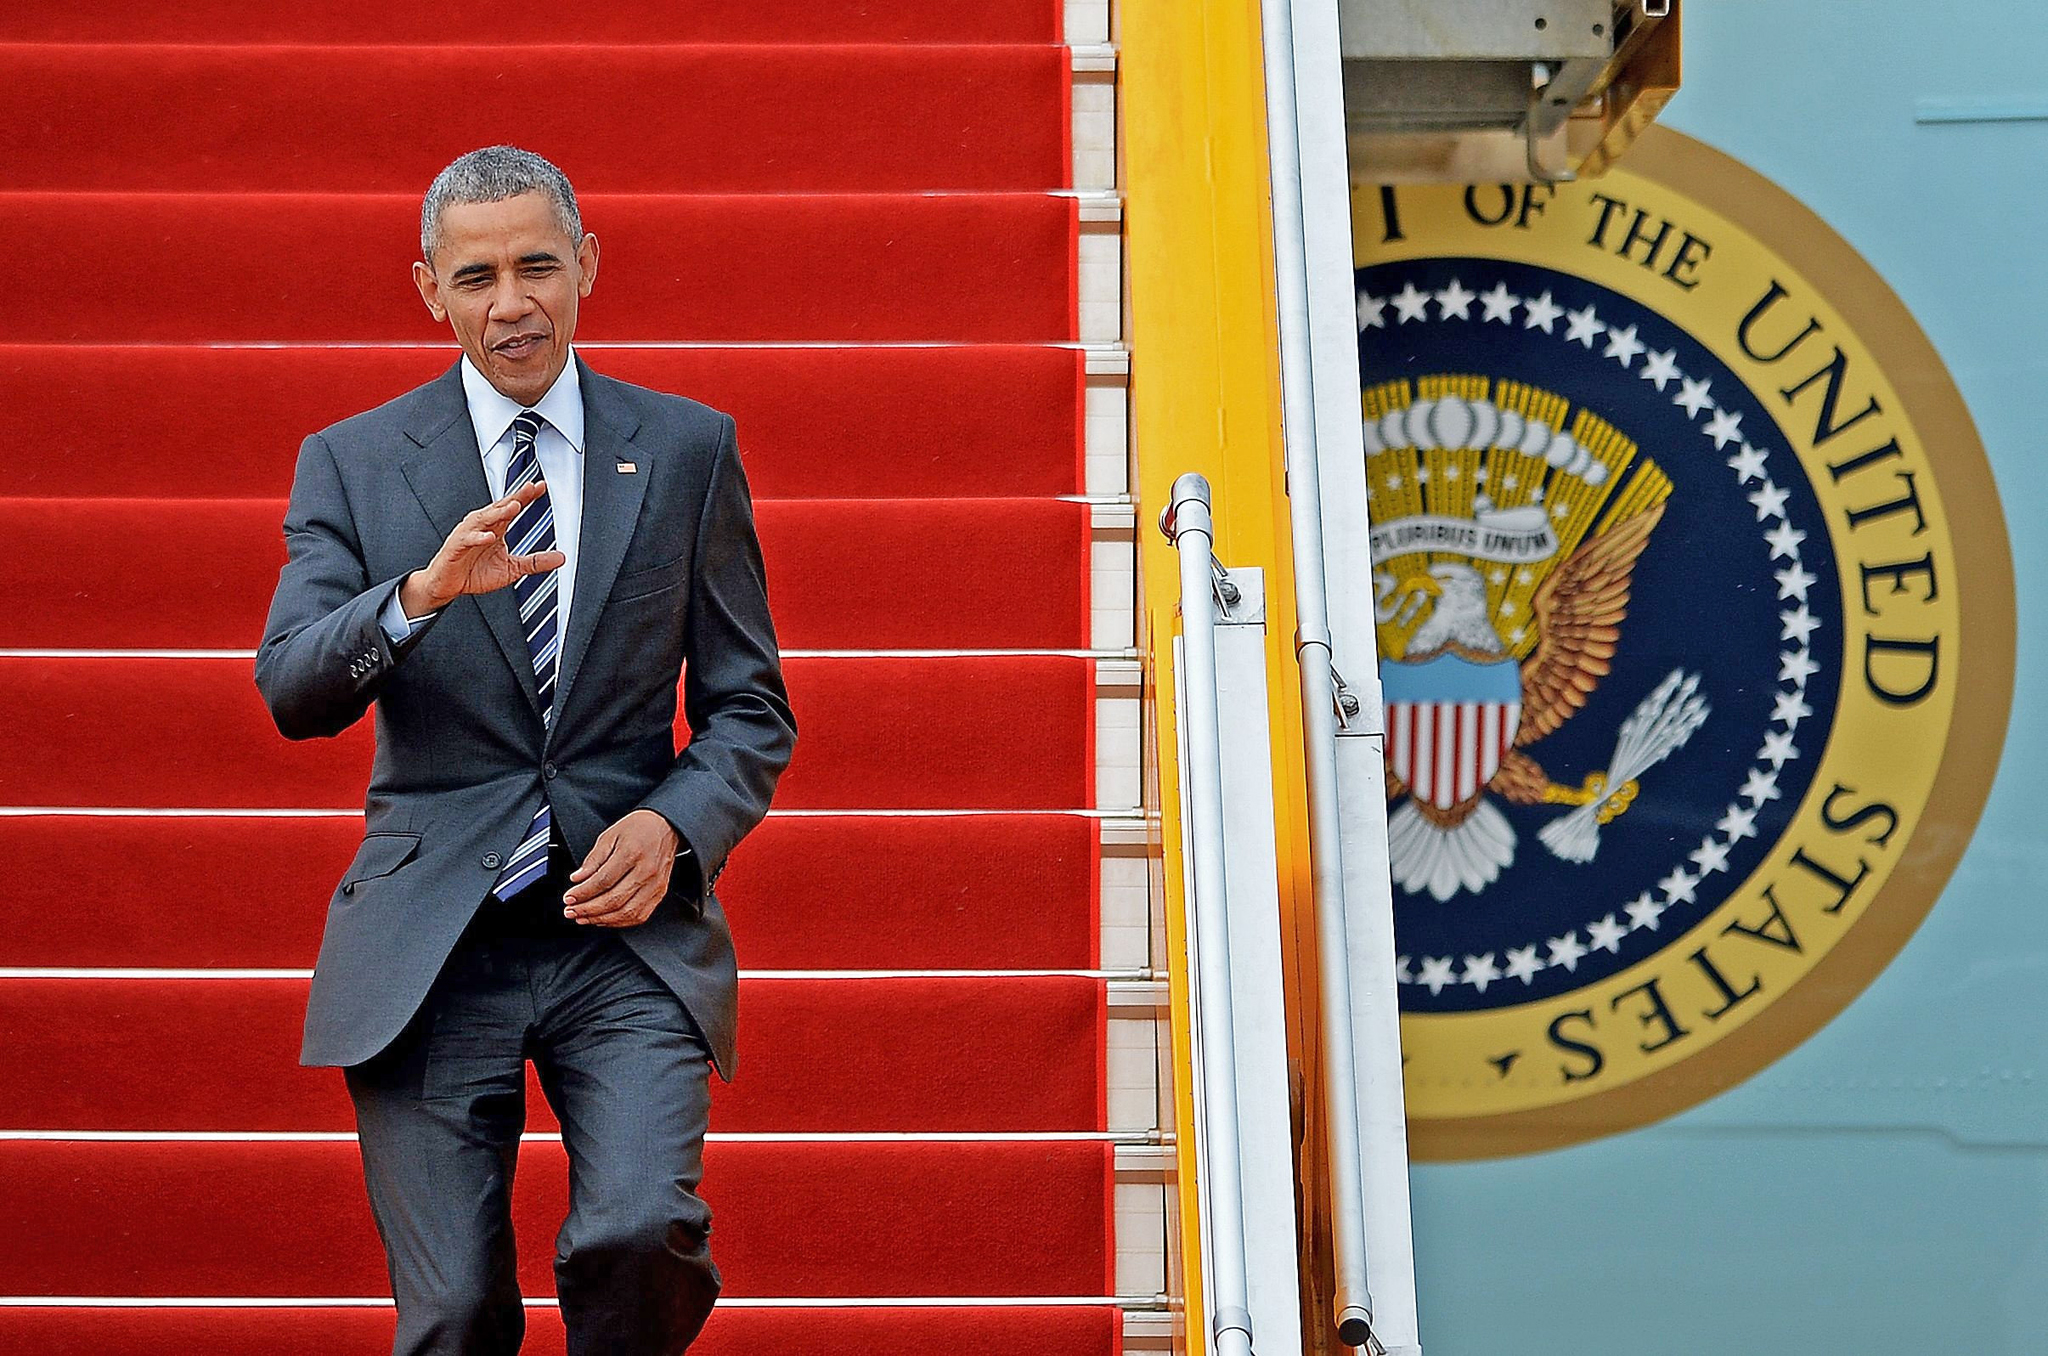 US President Barack Obama waves as he disembarks from Air Force One at the Tan Son Nhat airport in Ho Chi Minh City on May 24, 2016. Obama told communist Vietnam that basic human rights would not jeopardise its stability, in an impassioned appeal for the one-party state to abandon authoritarianism. / AFP PHOTO / CHRISTOPHE ARCHAMBAULTCHRISTOPHE ARCHAMBAULT/AFP/Getty Images